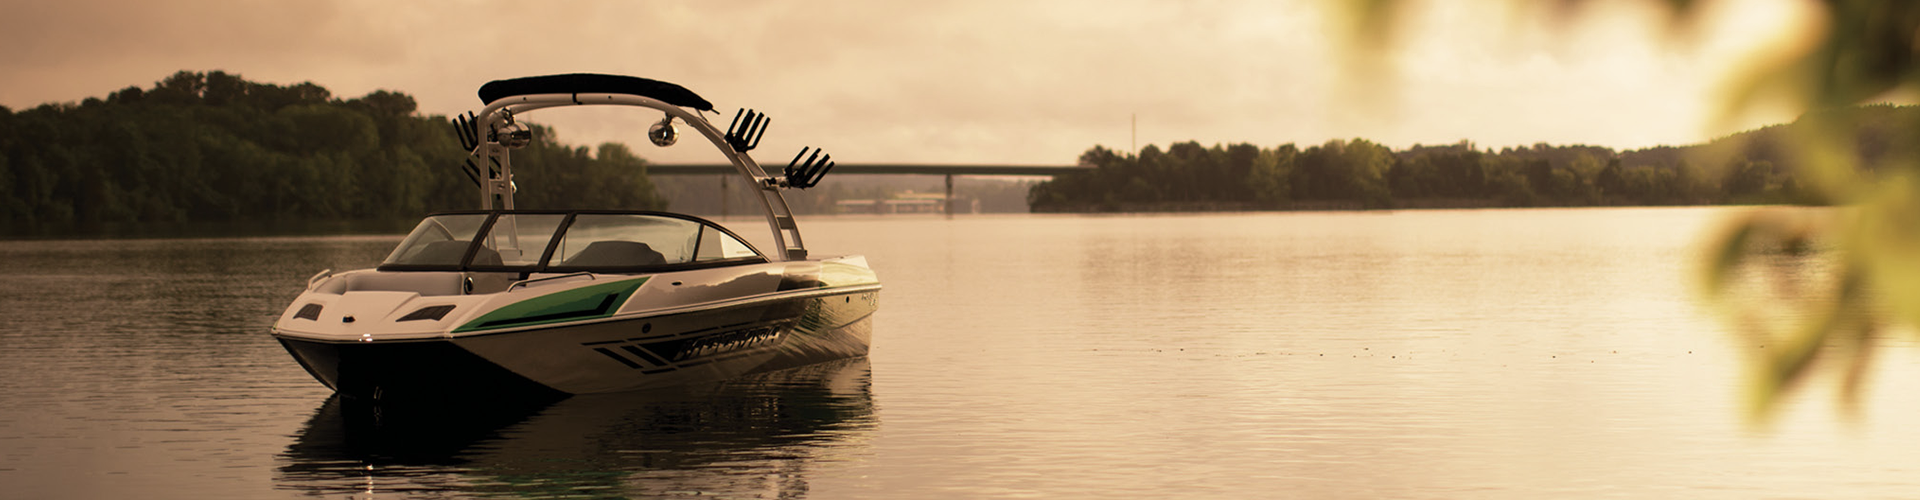 moomba boats header